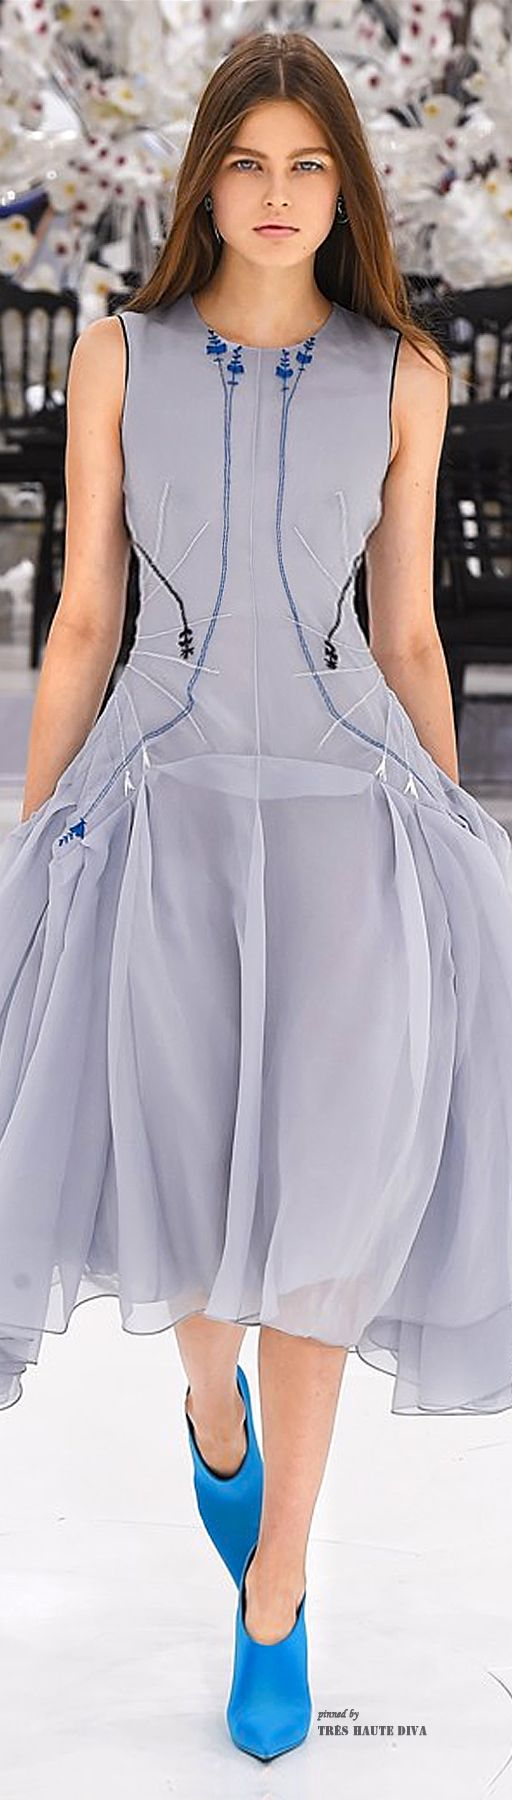 Christian Dior Haute Couture Autumn/Winter 2014-2015 YaseminAksu